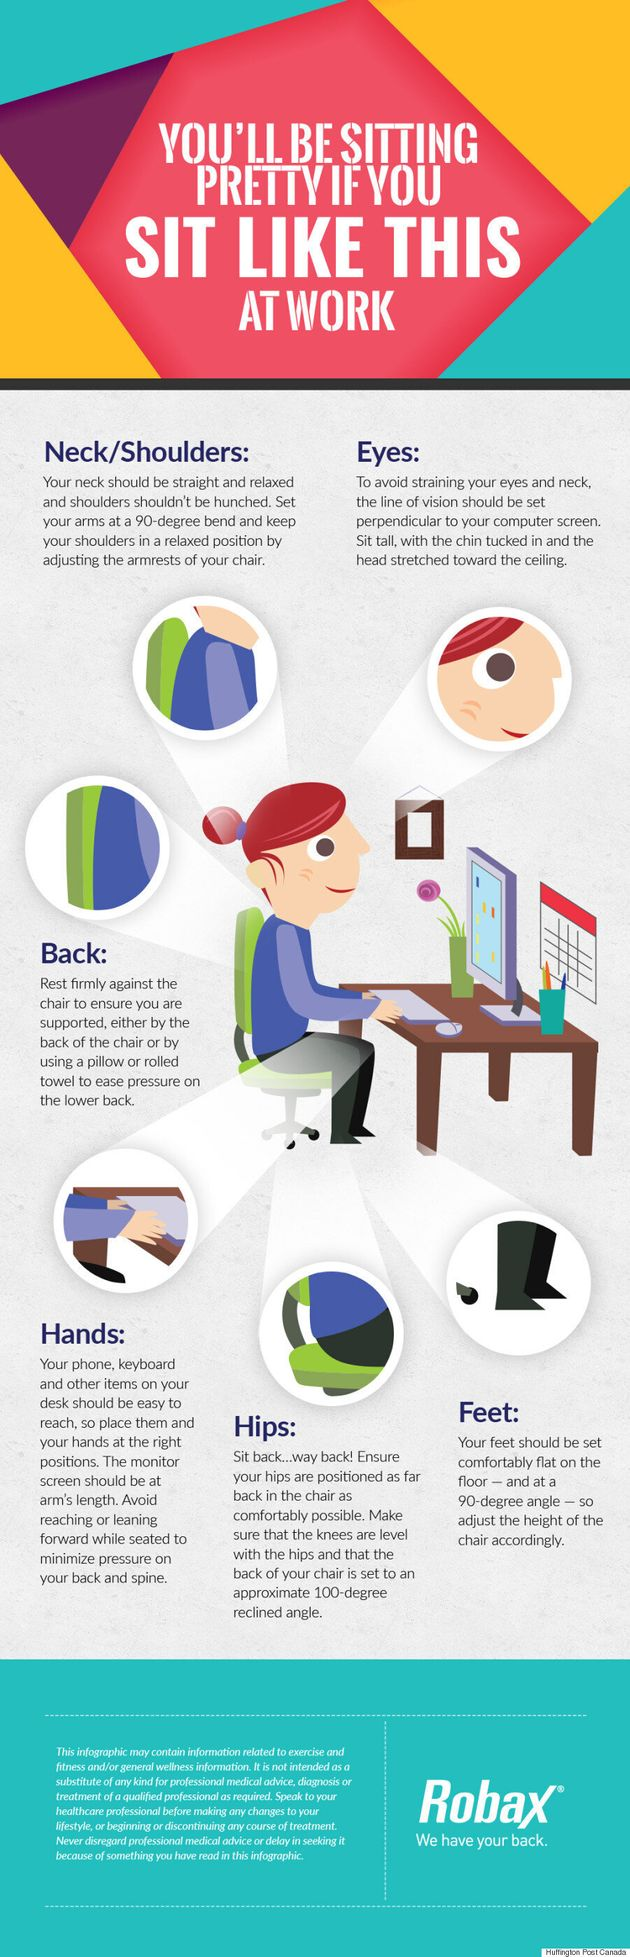 You'll Be Sitting Pretty If You Sit Like This At Work